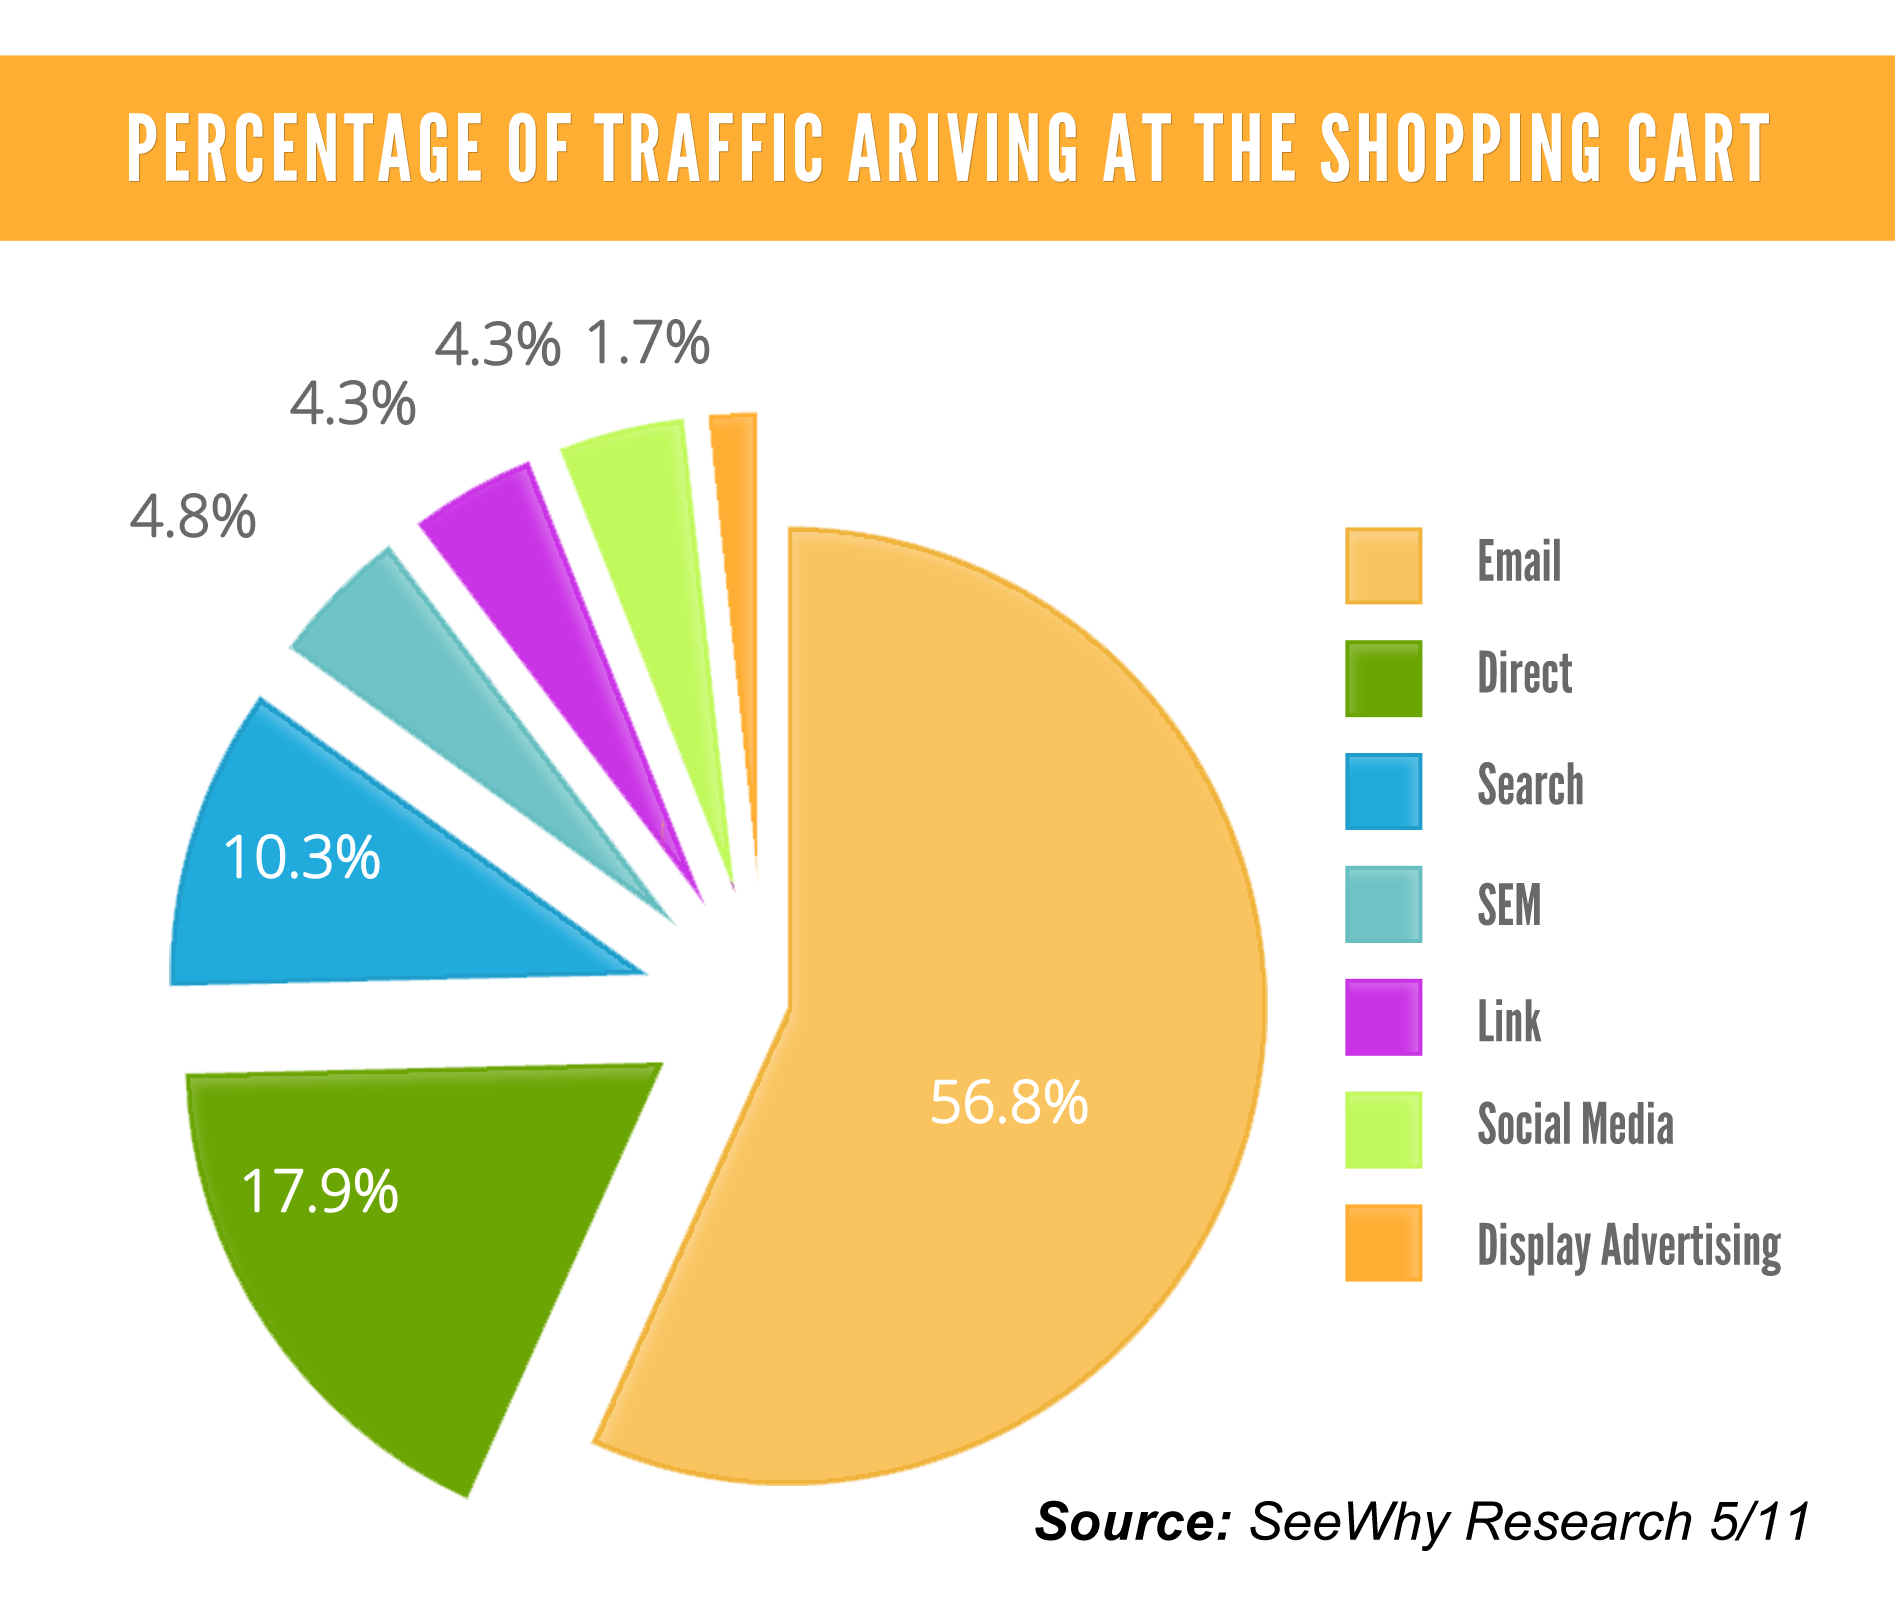 Percentage Of Traffic Arriving At The Shkopping Cart